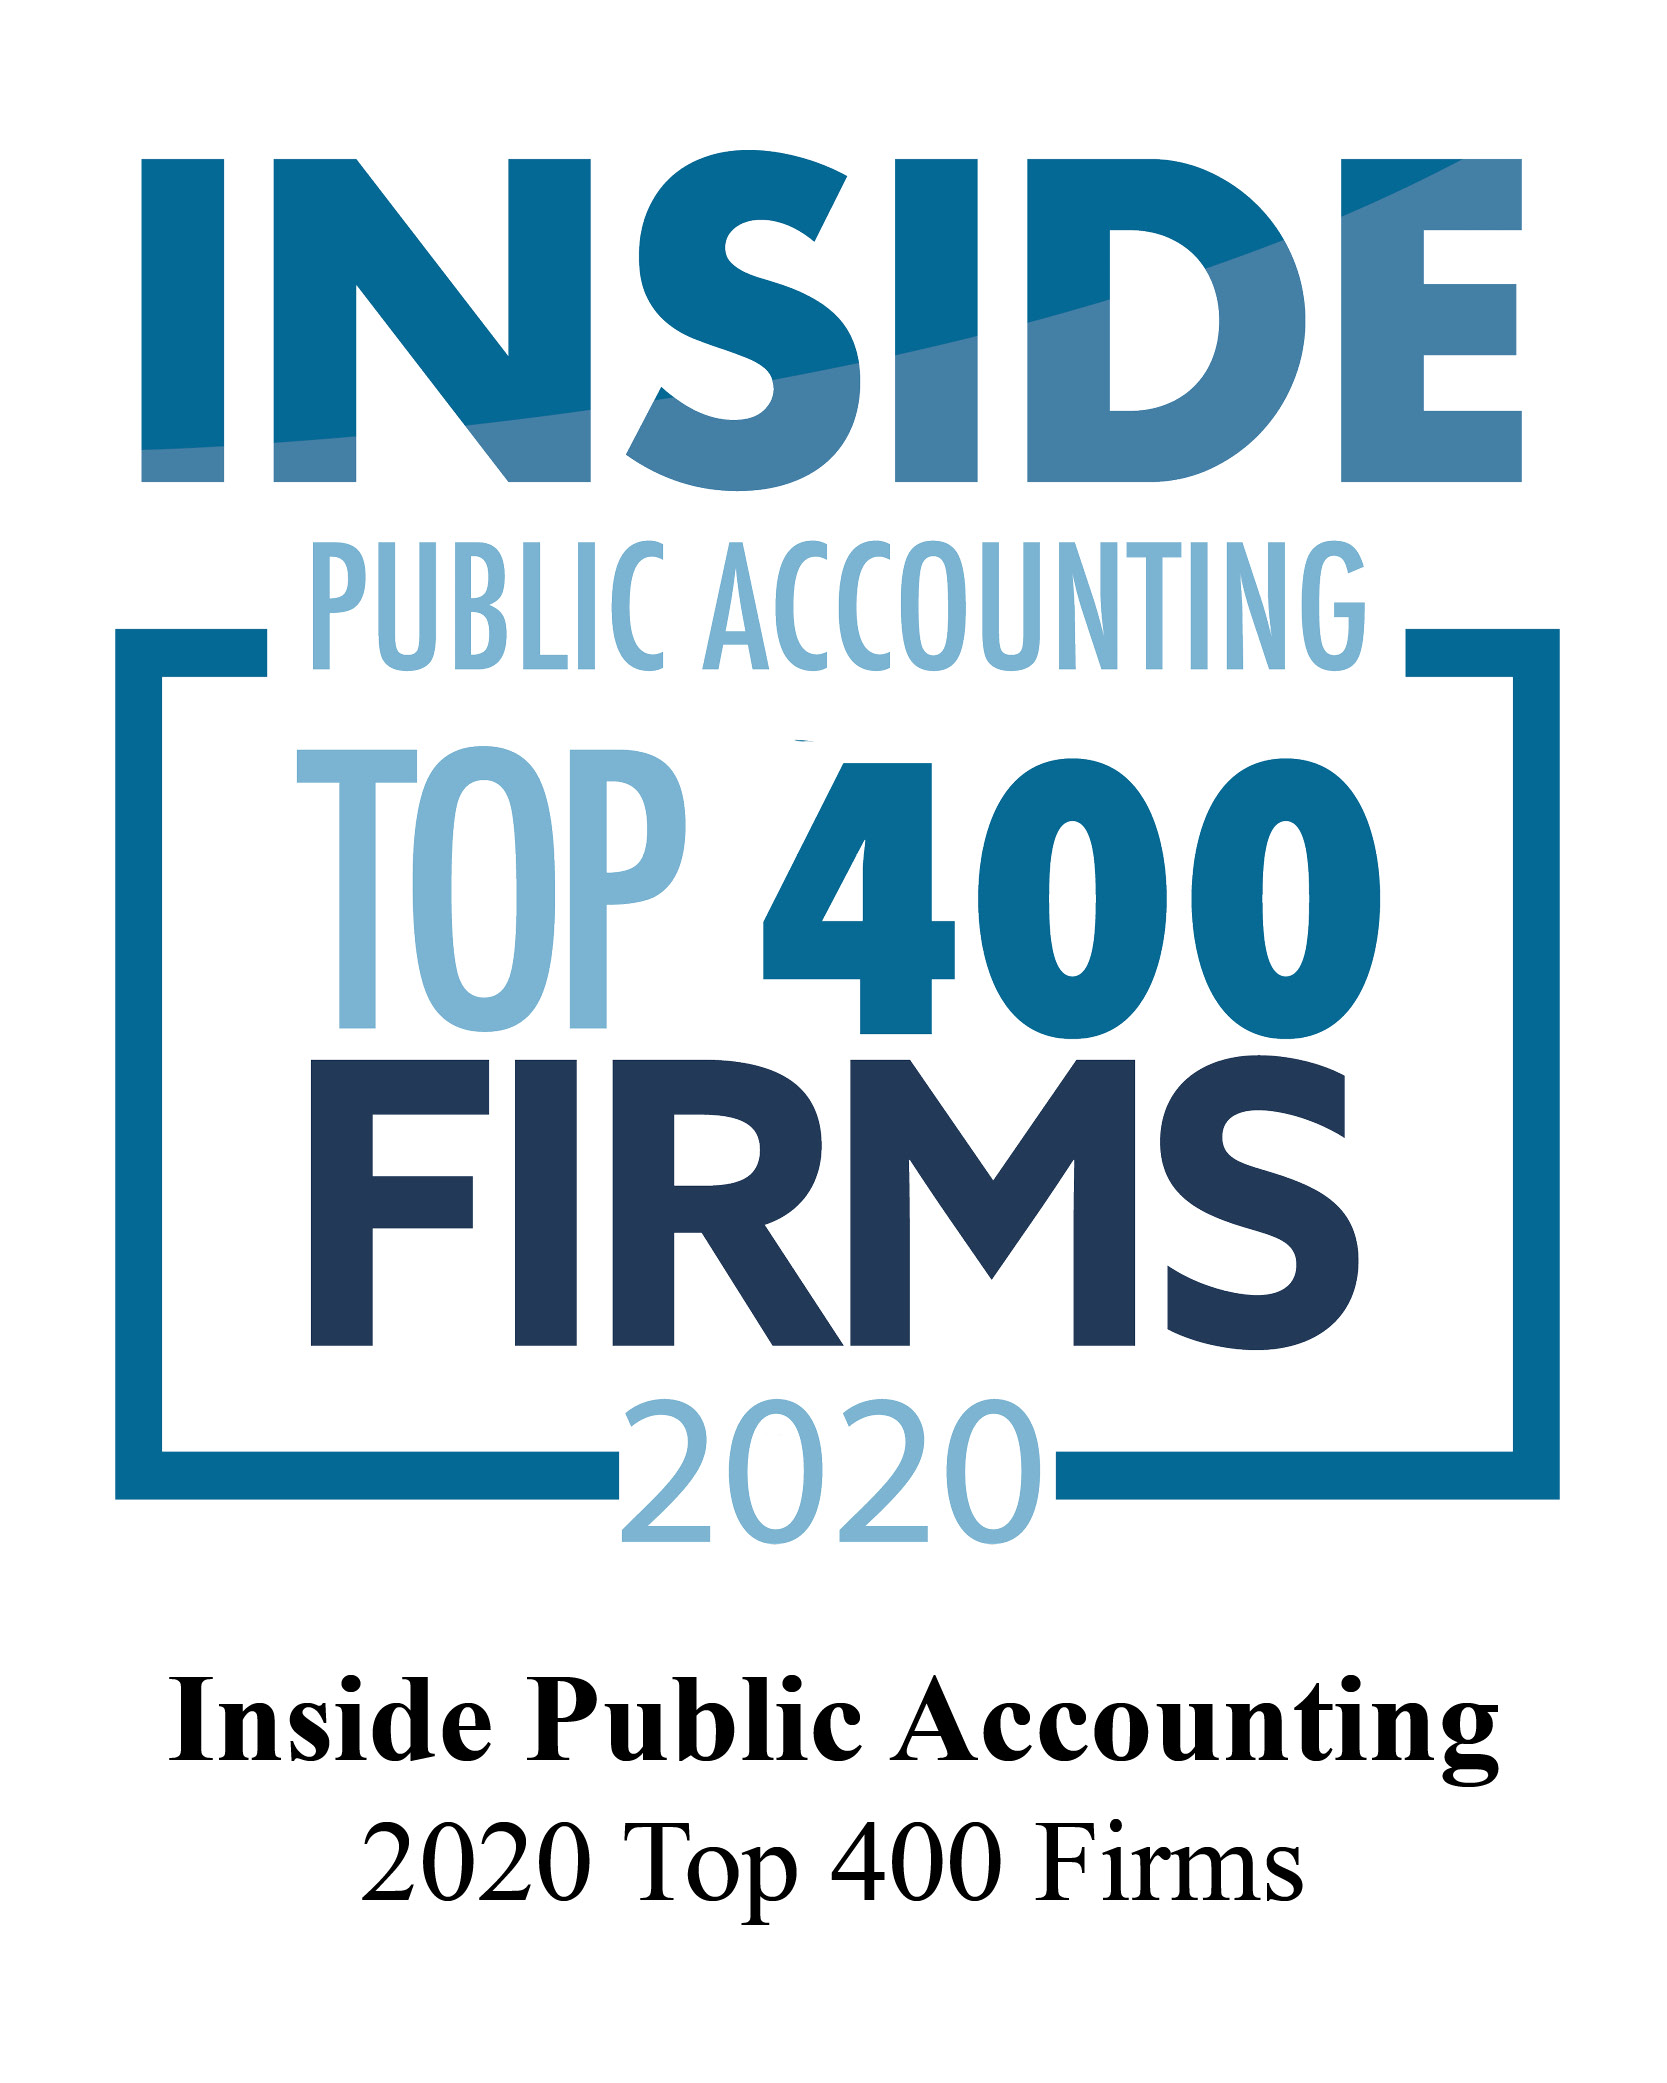 Inside Public Accounting 2020